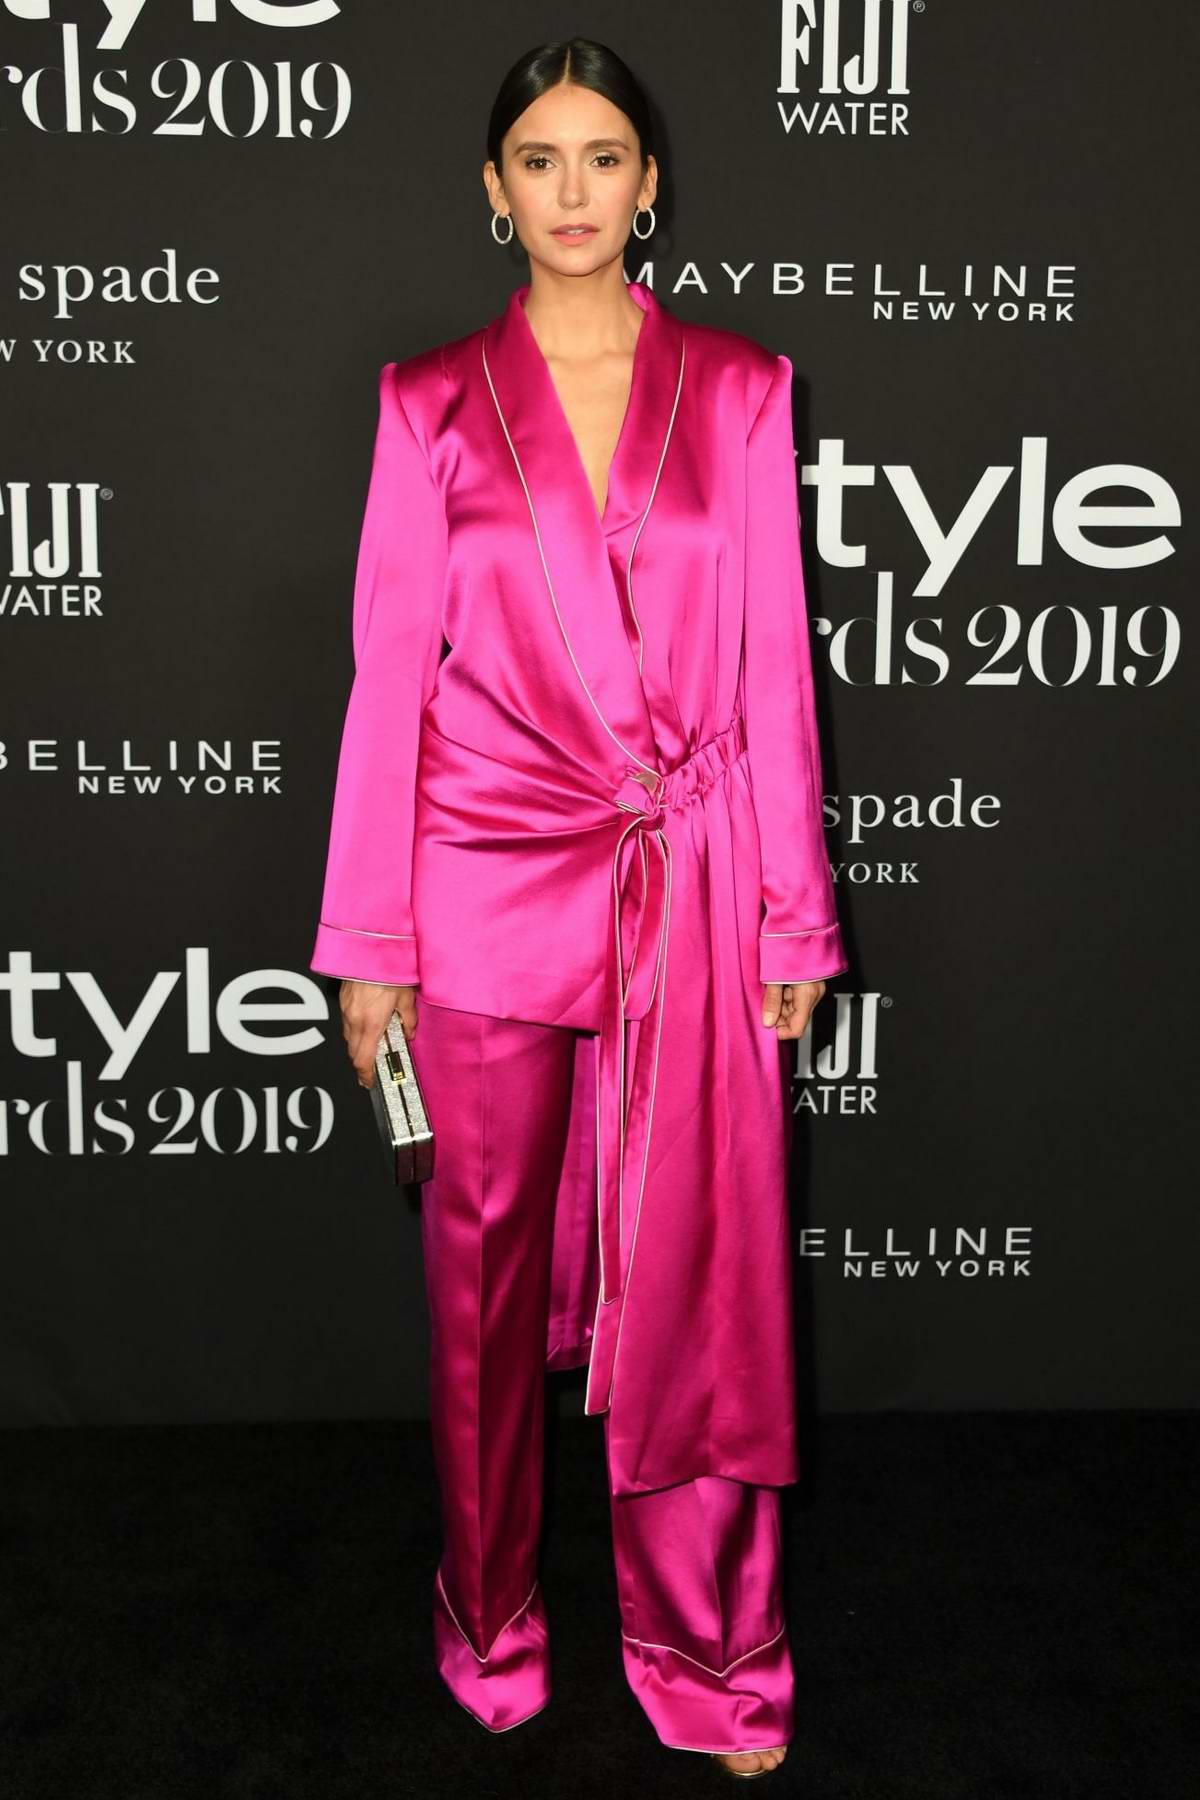 Nina Dobrev attends the 5th Annual InStyle Awards in Los Angeles